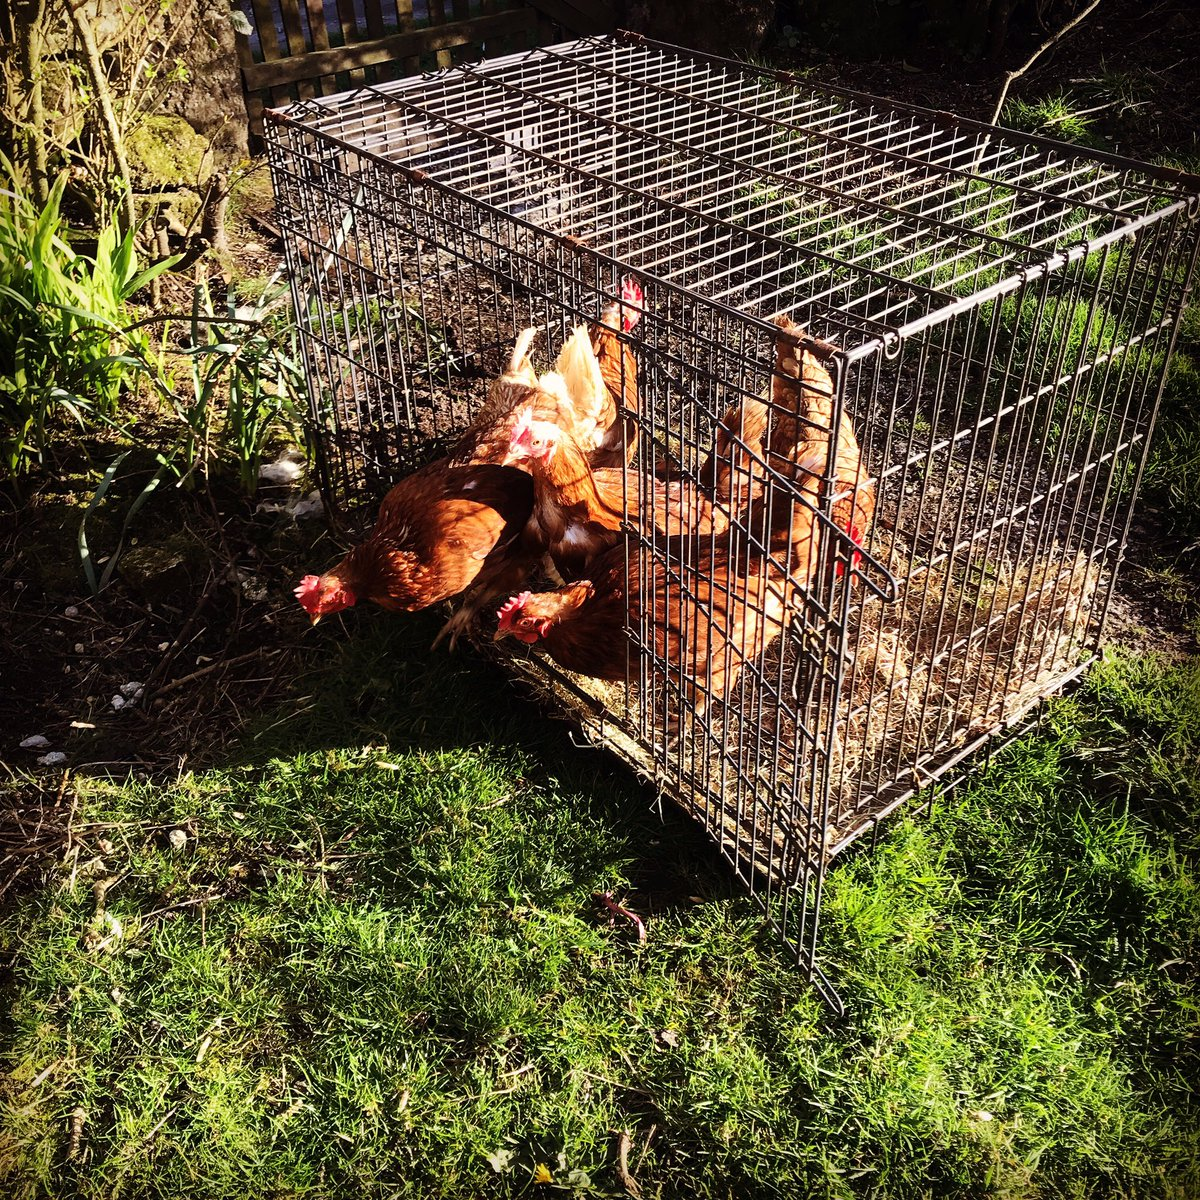 #savedfromslaughter #18monthsold #eggmakingmachines #cruelworld #happylives @BHWTOfficial https://t.co/RLQX7xjdjM